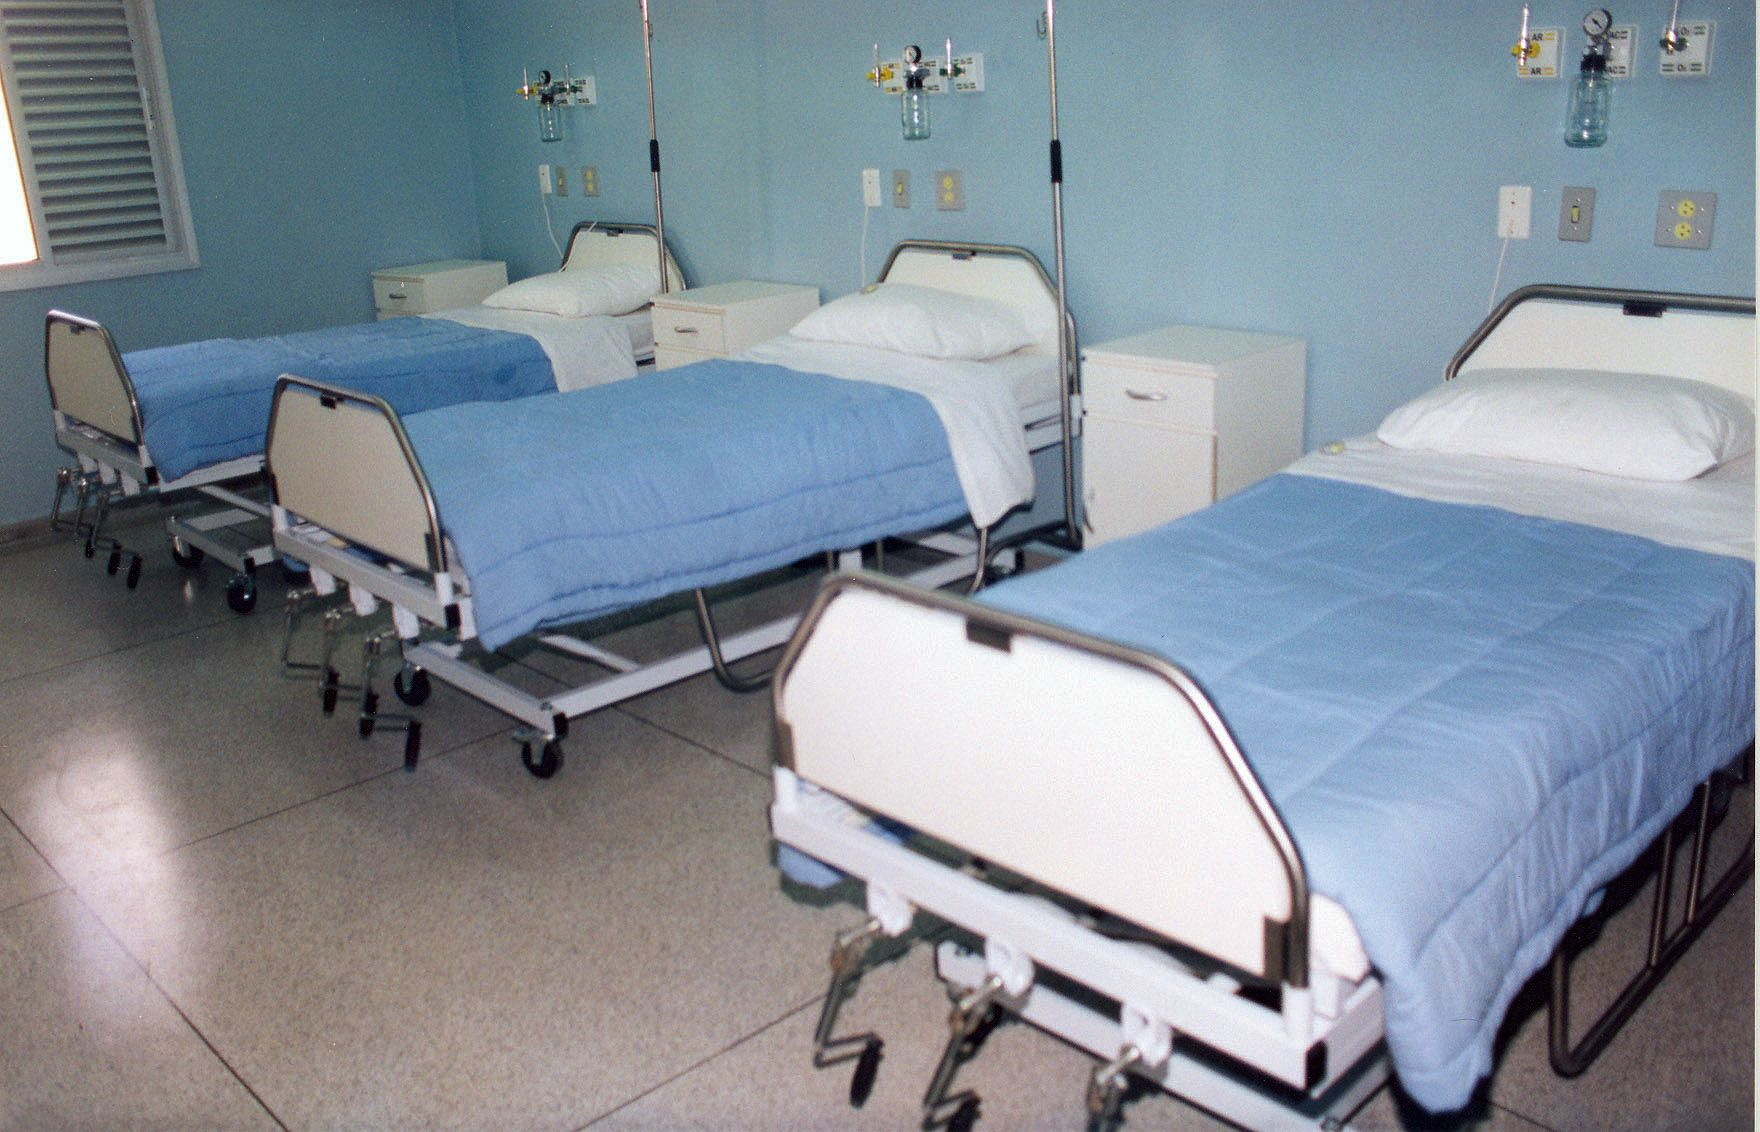 Specific Information About Hospital Bed Price In Pakistan